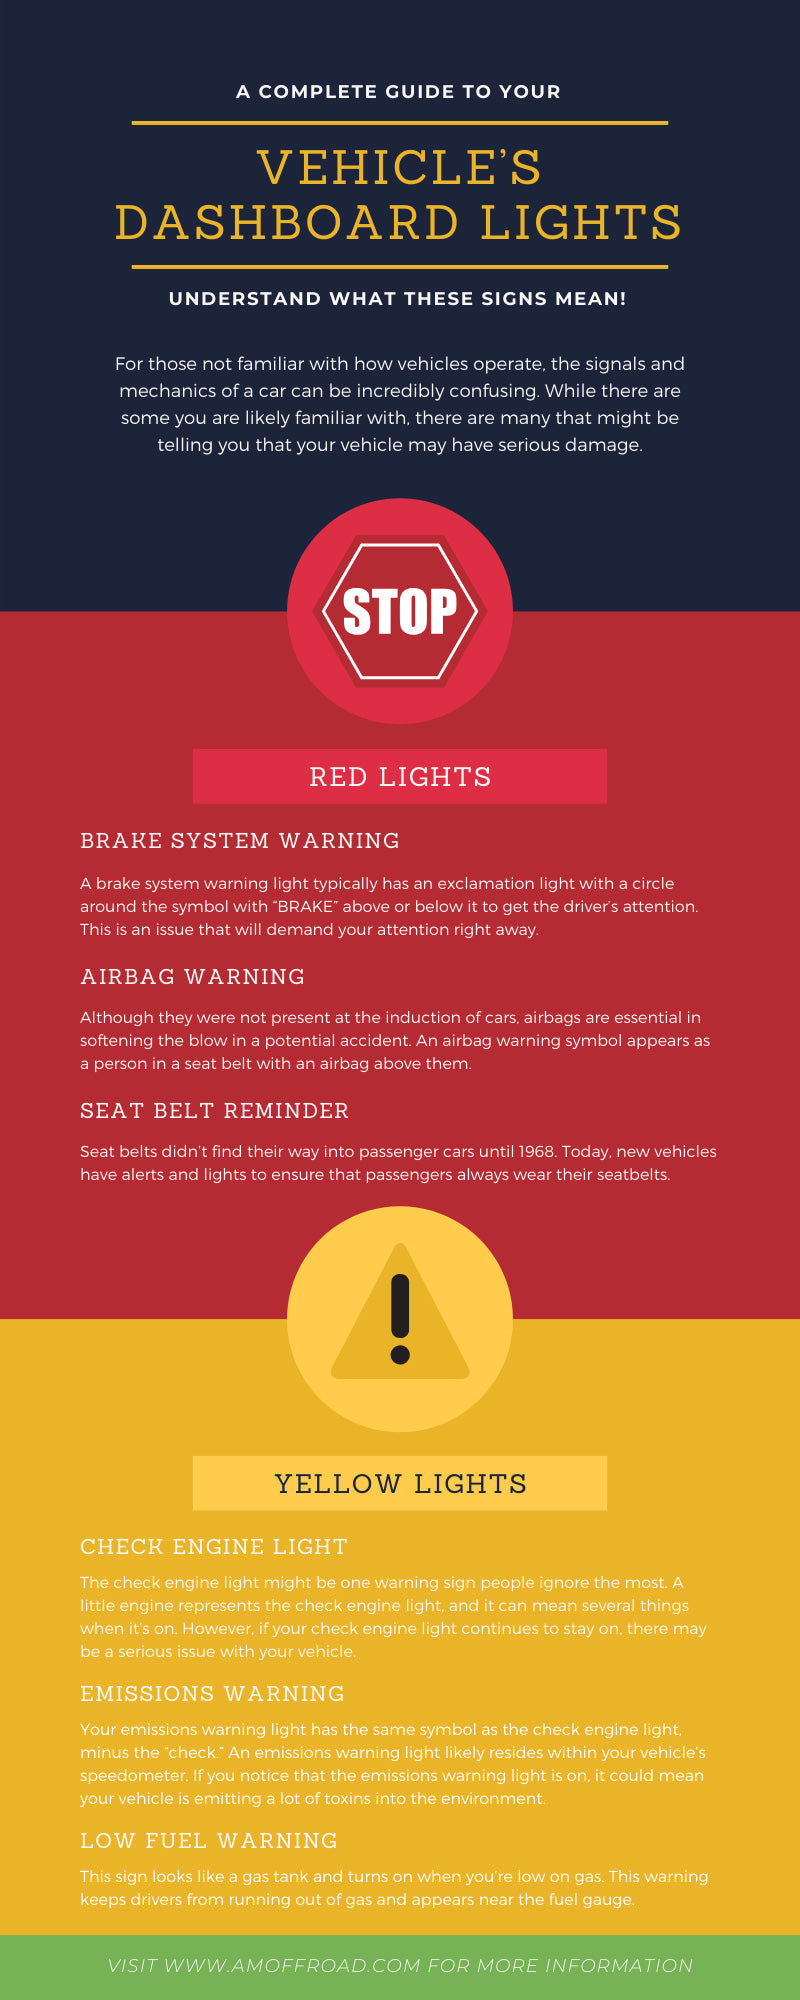 Guide to Vehicle Dashboard Lights